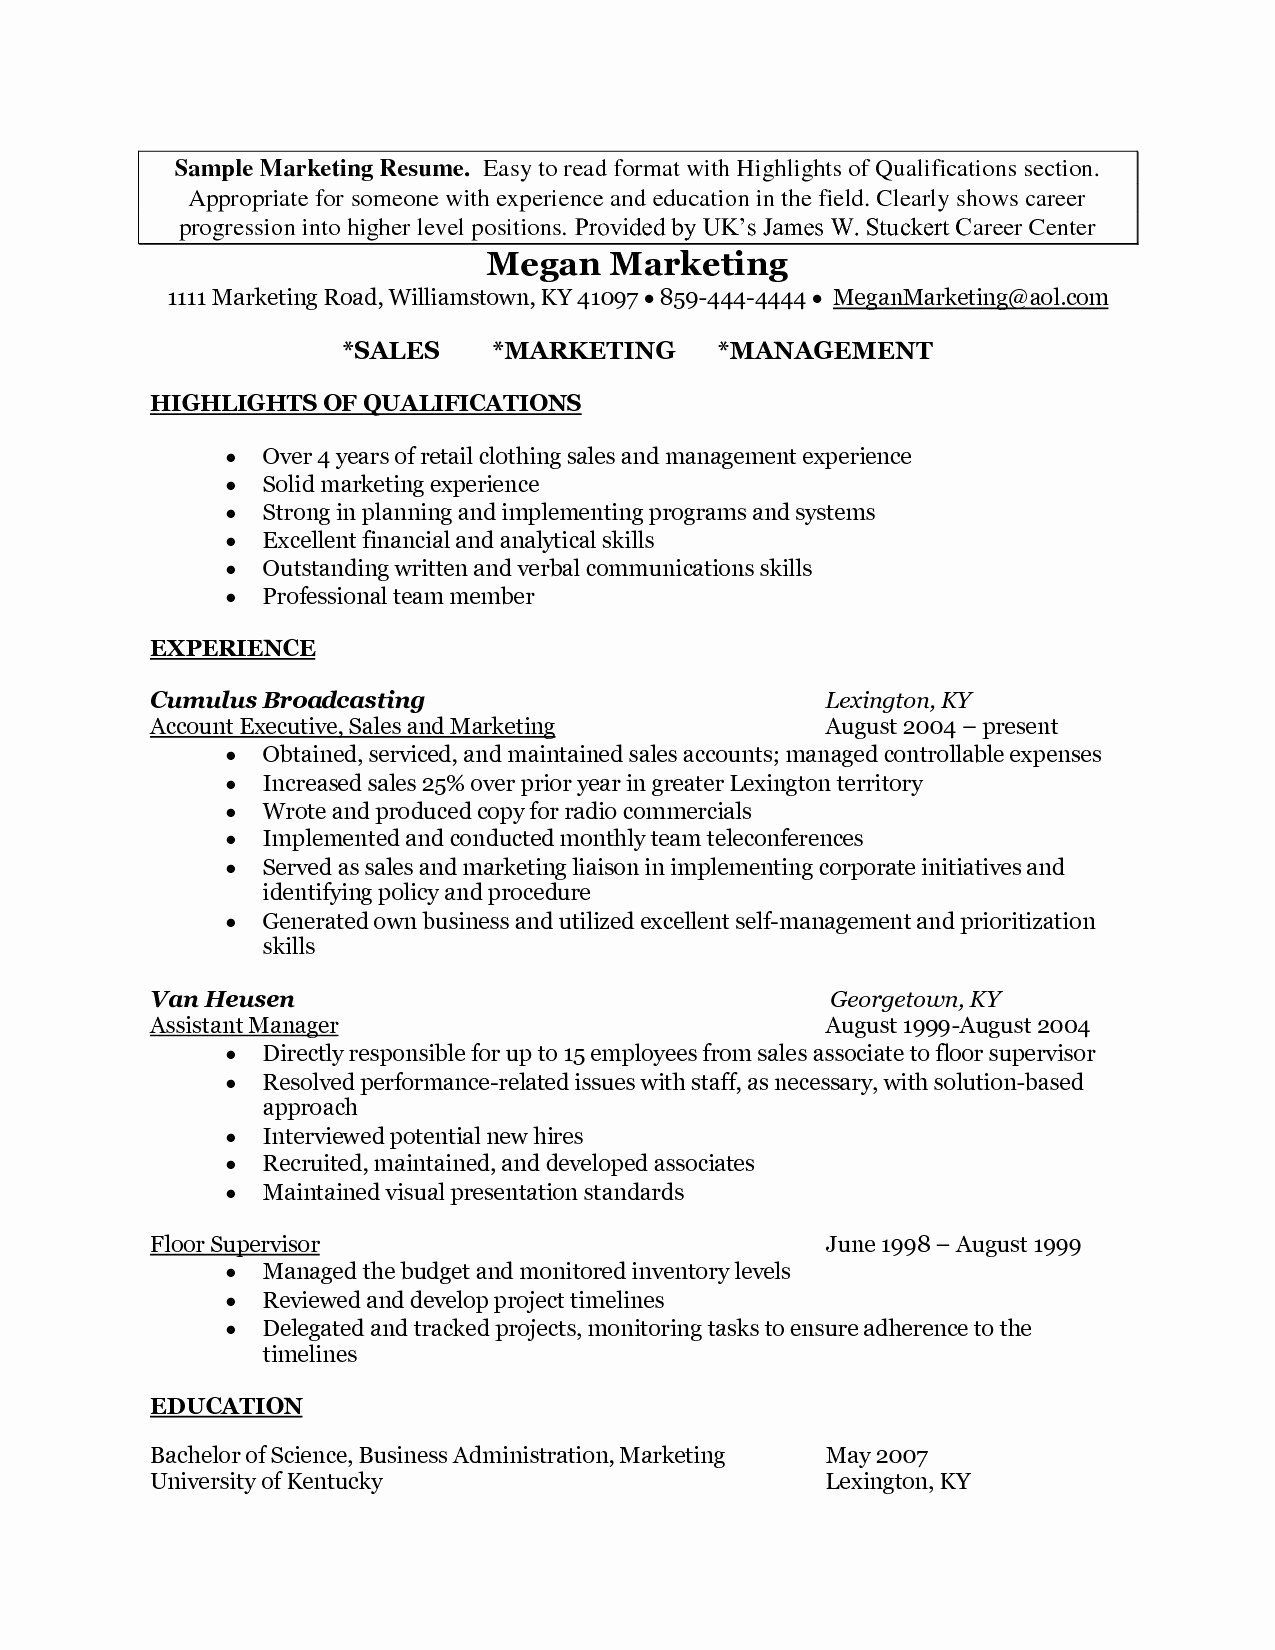 Good Luck New Job Unique Basic Cover Letter Sample